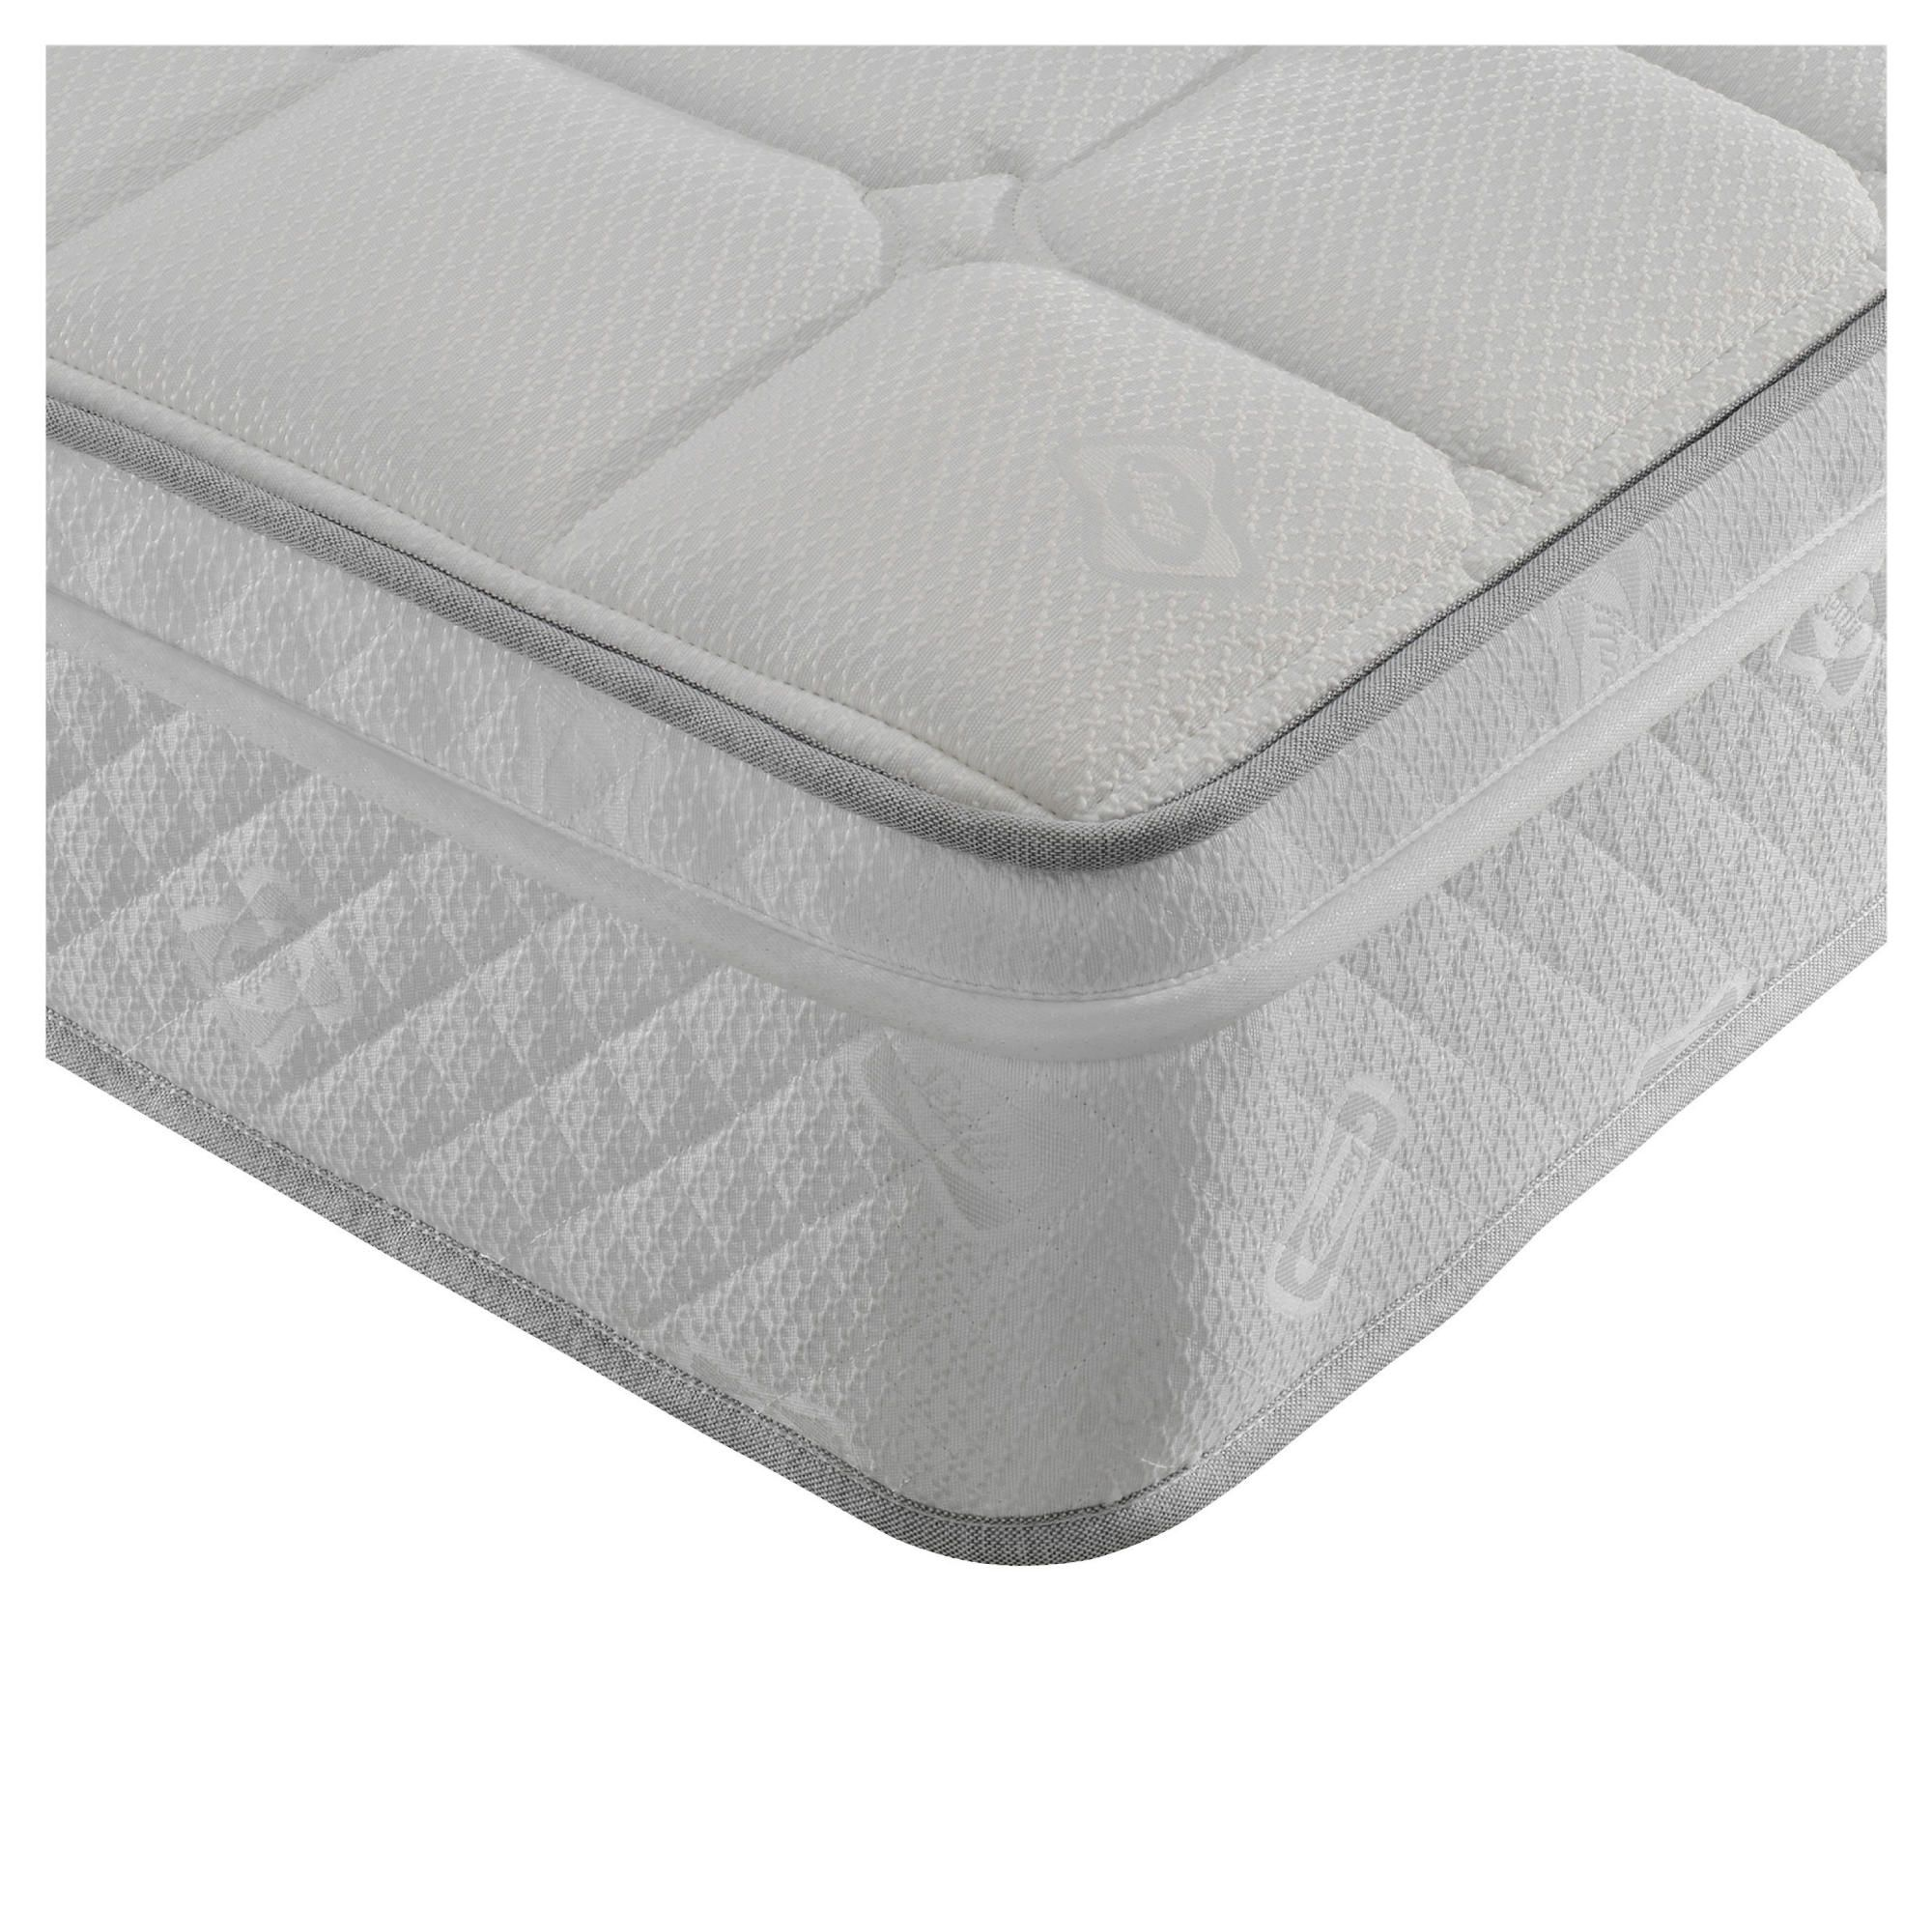 Sealy Purism Memory Zoned Super King Mattress (bedstead) at Tesco Direct